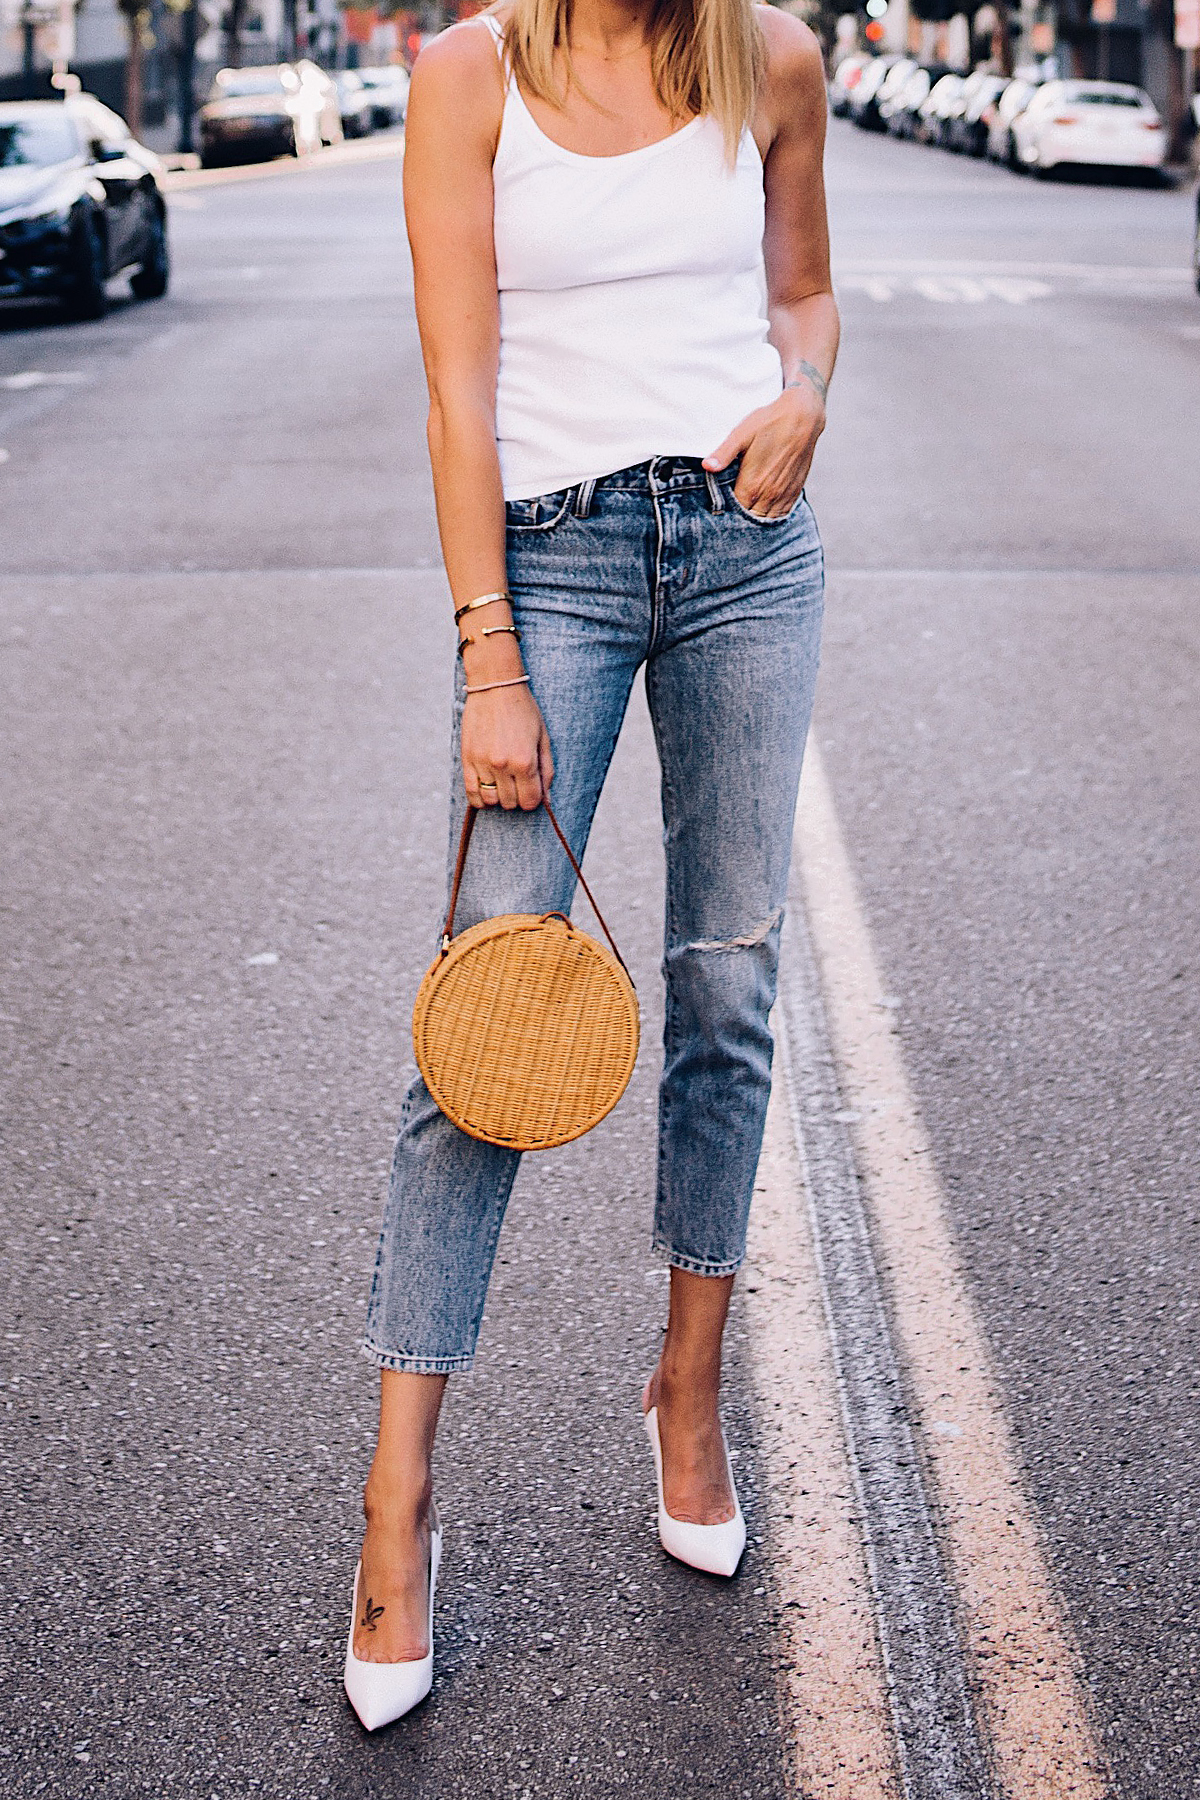 Woman Wearing Fashion Jackson Topshop White Rib Camisole Nordstrom Ripped Ankle Crop Jeans Gianvito Rossi White Pumps Circle Basket Bag Fashion Jackson San Diego Blogger Fashion Blogger Street Style